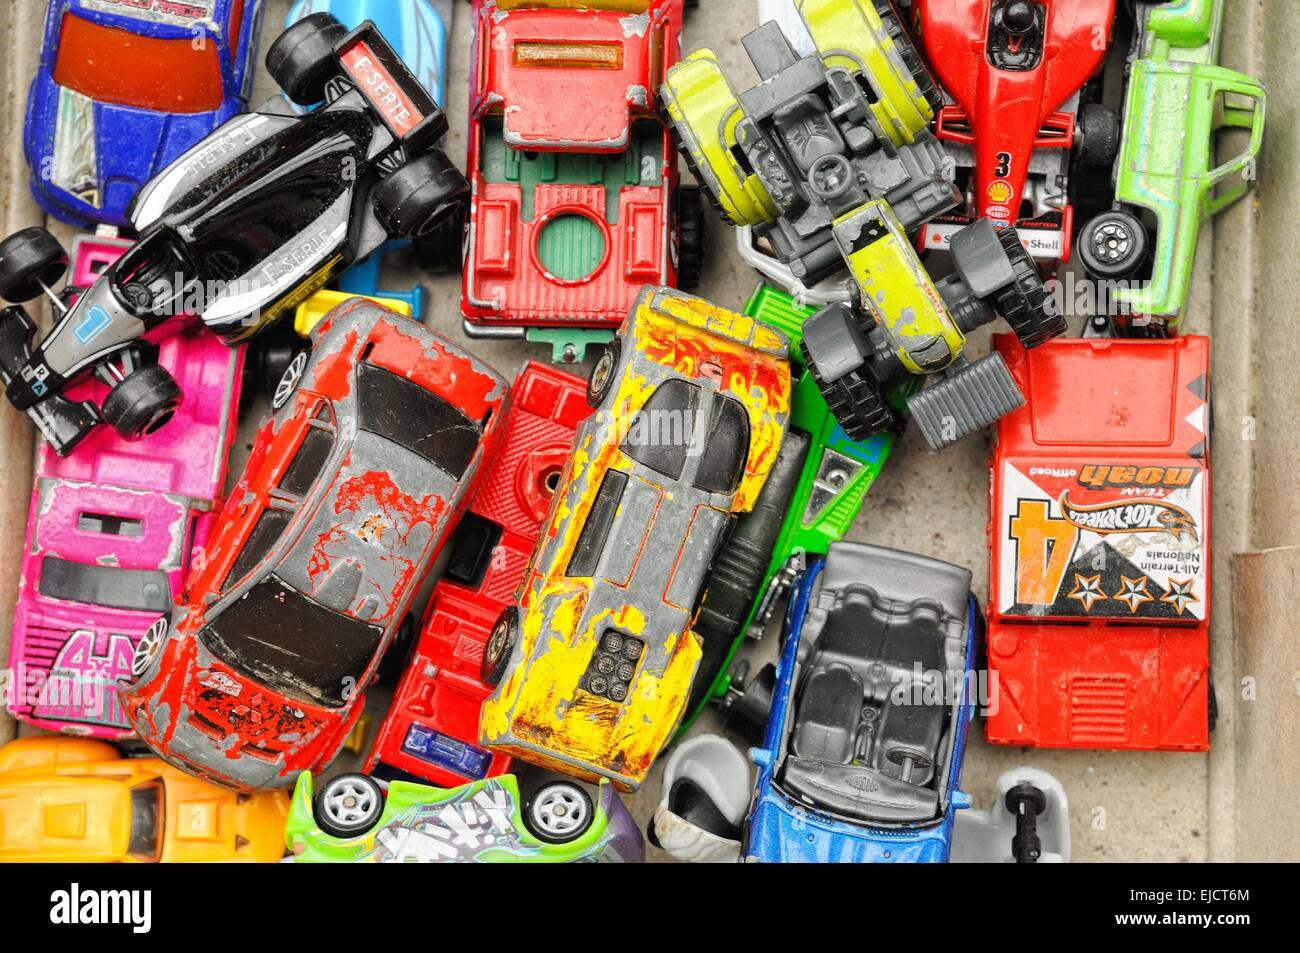 Toys in the box - Stock Image